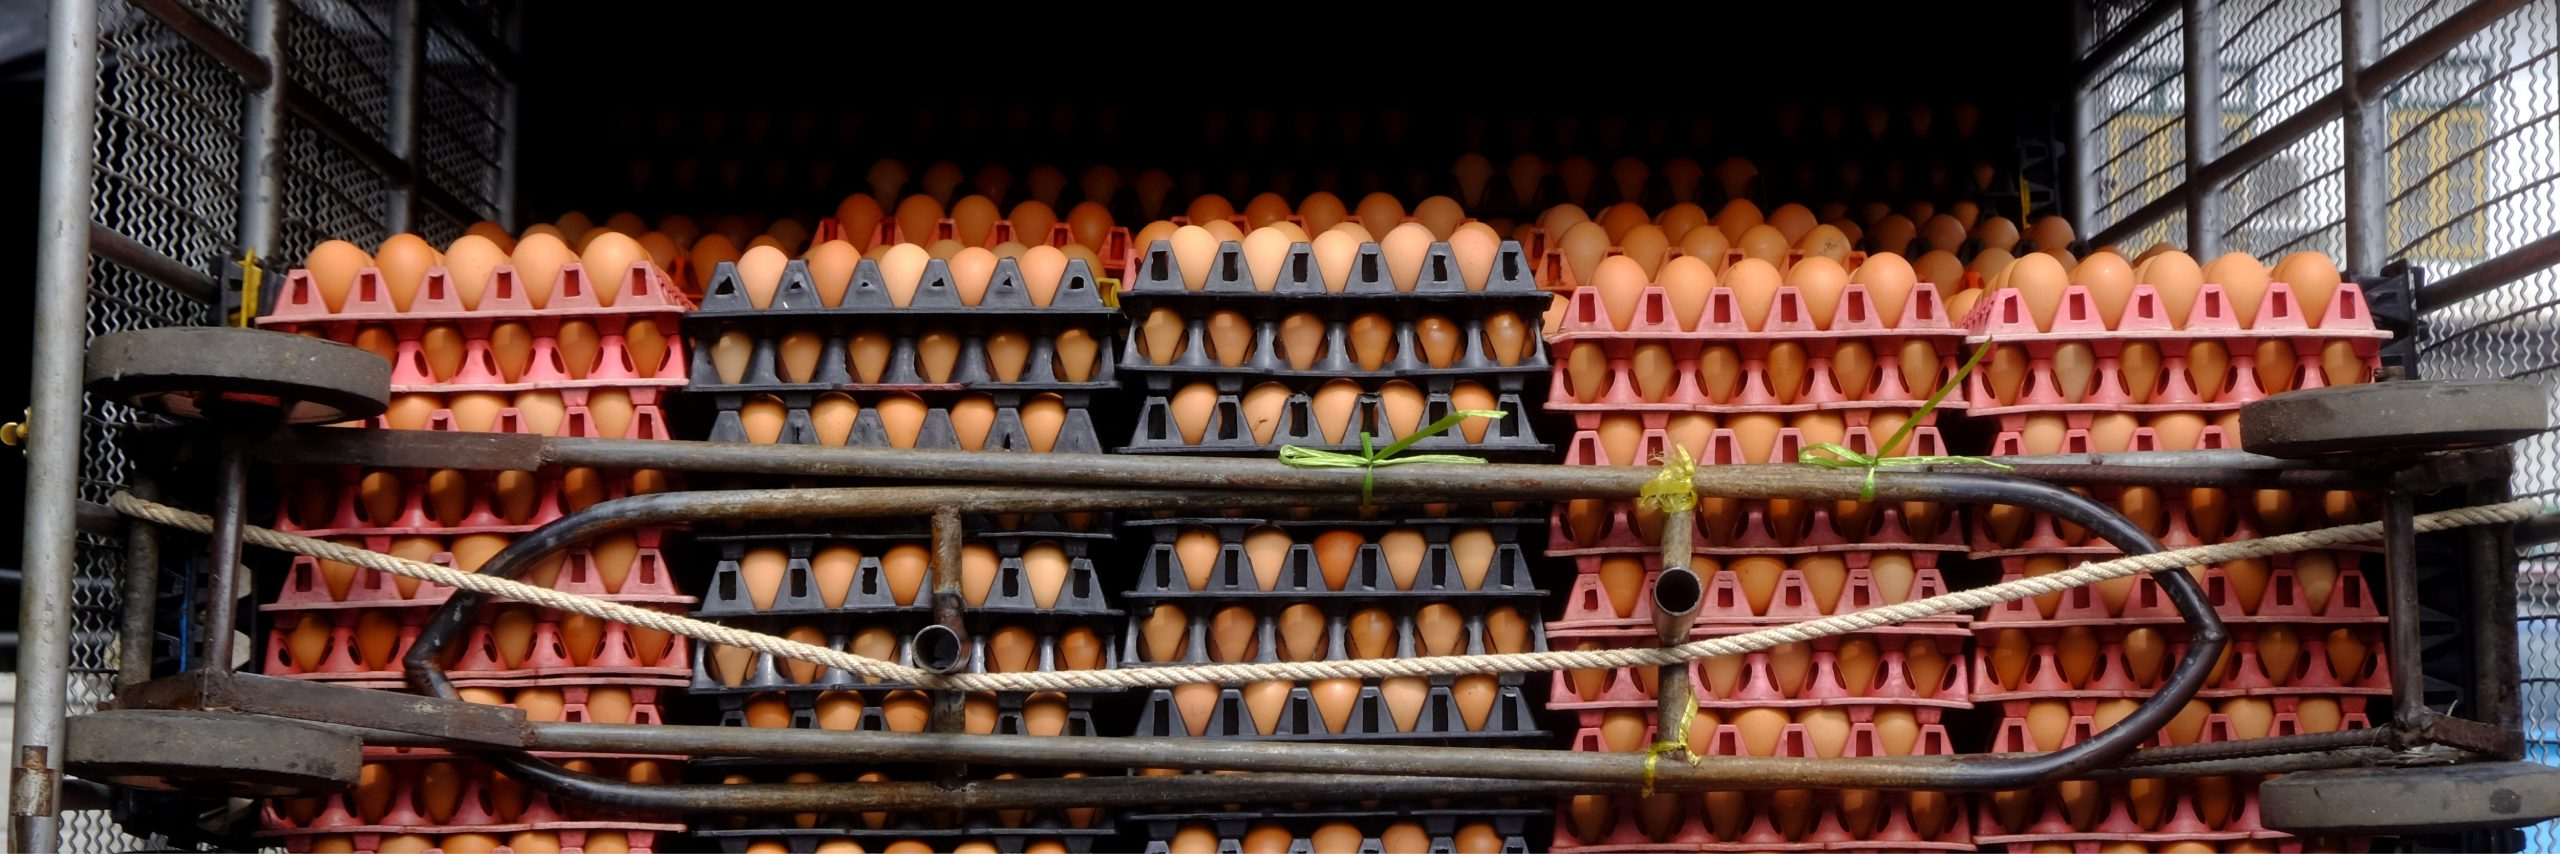 Labor Issues Challenge Poultry Industry